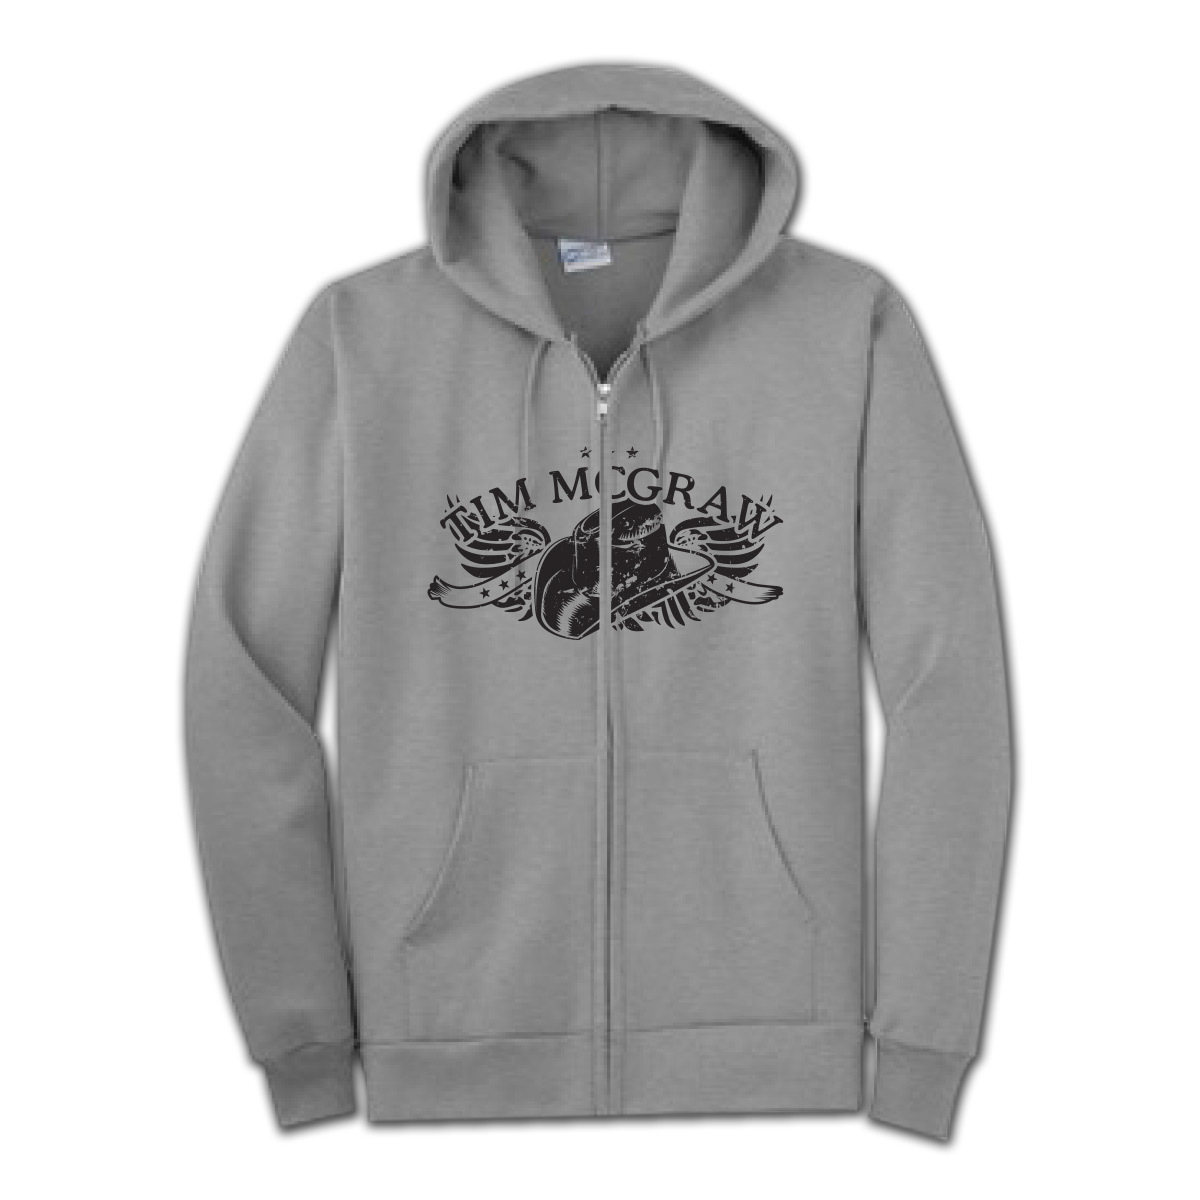 Tim McGraw Winged Hat Unisex Full Zip Hoodie